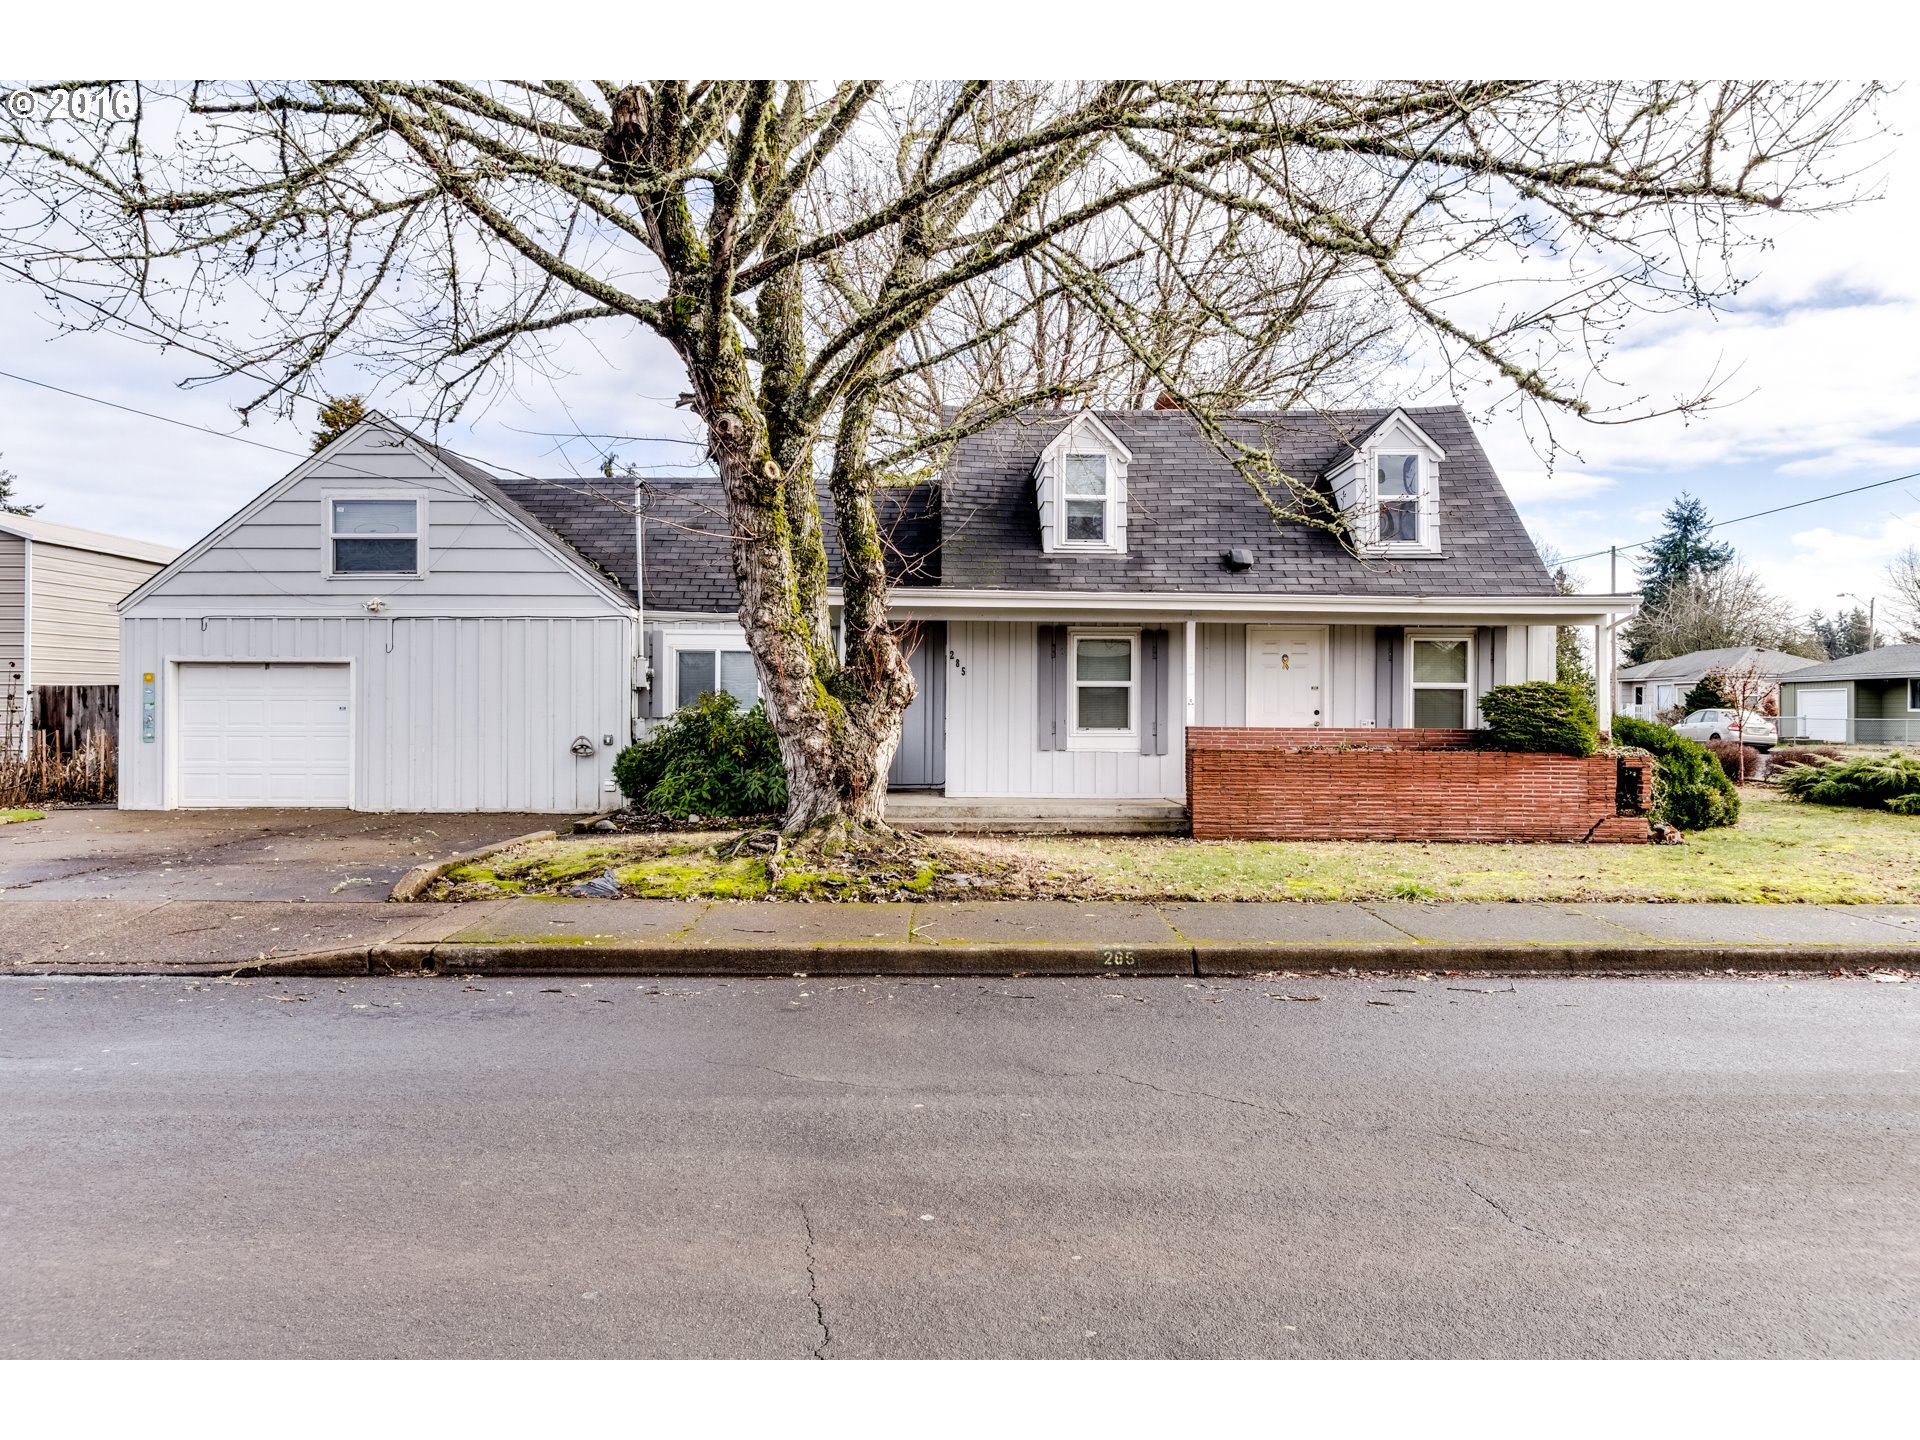 285 S 37th St, Springfield, OR